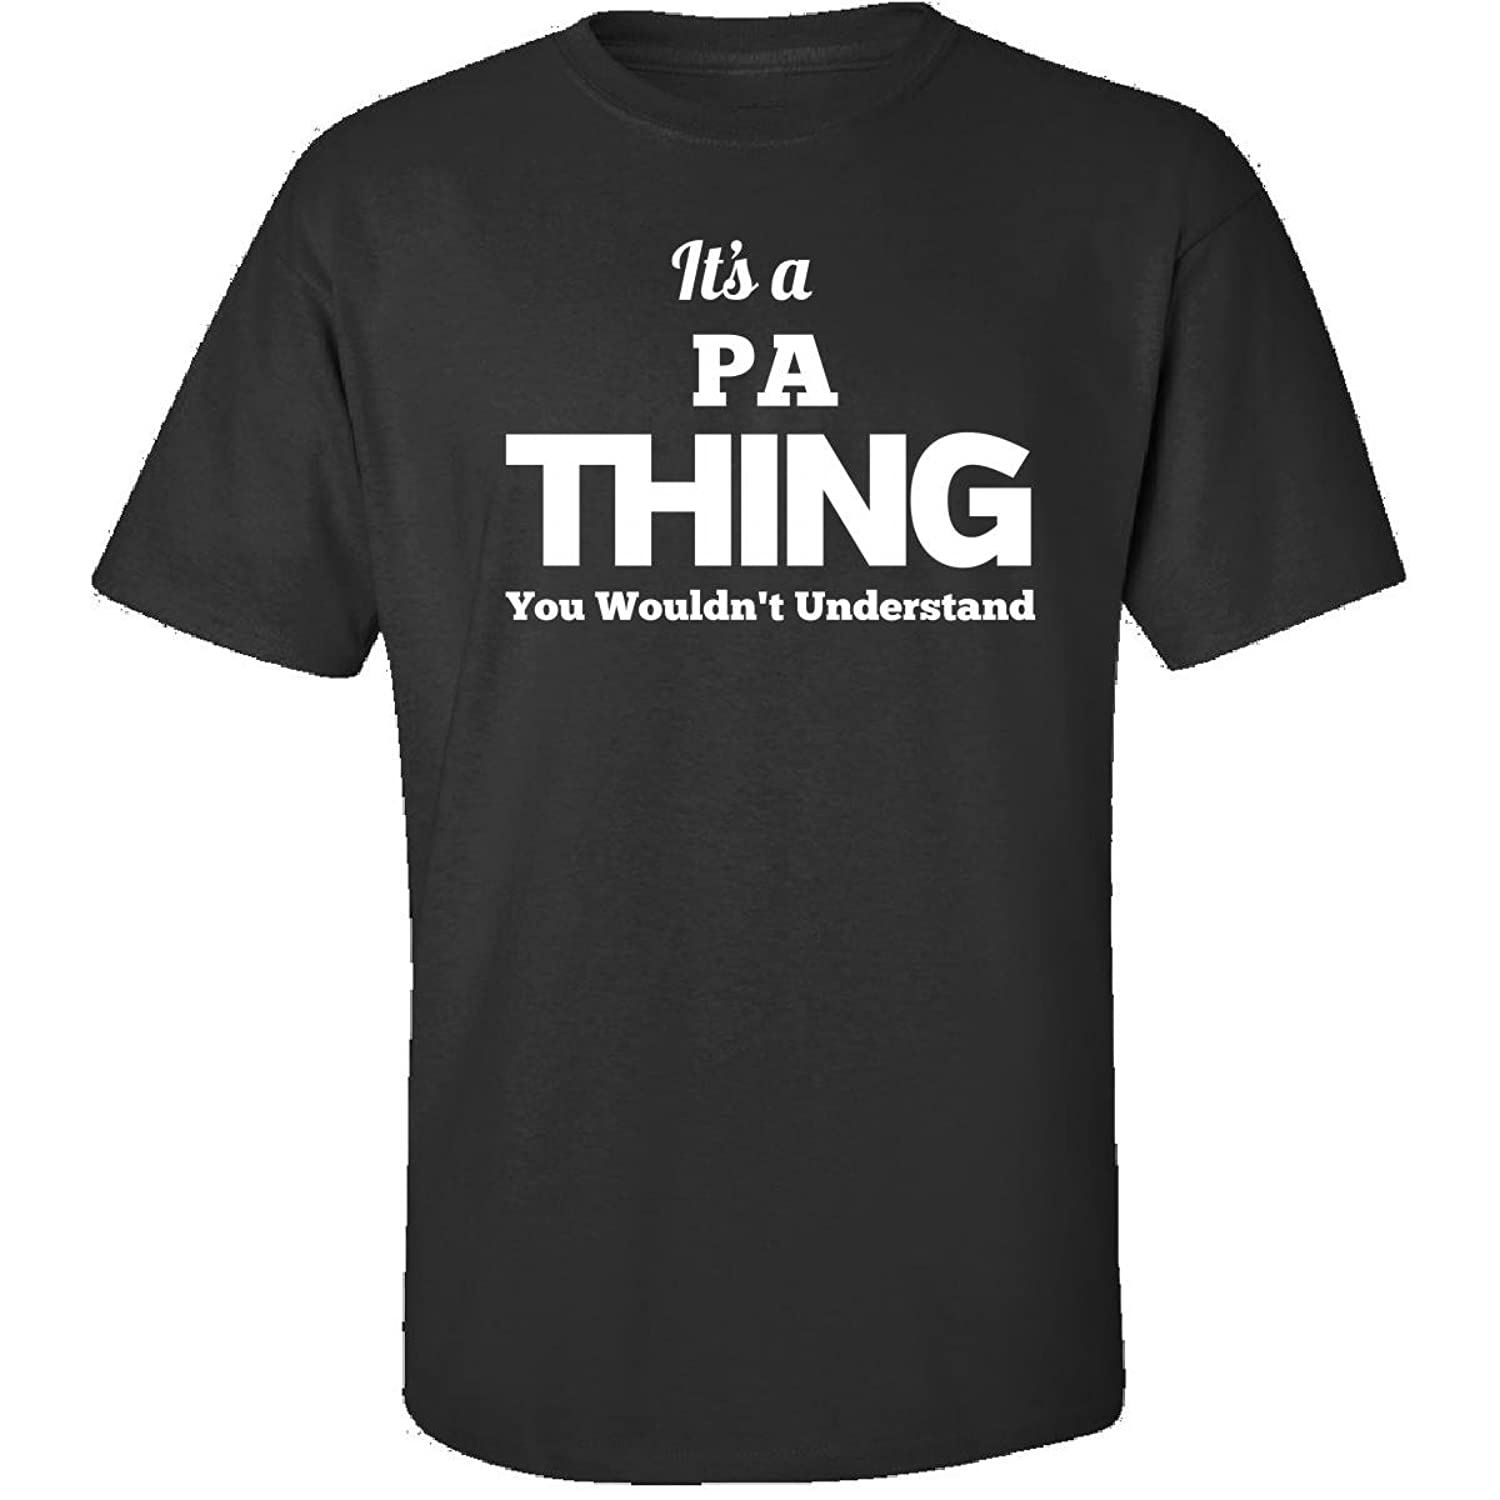 Its A Pa Thing You Wouldnt Understand - Adult Shirt